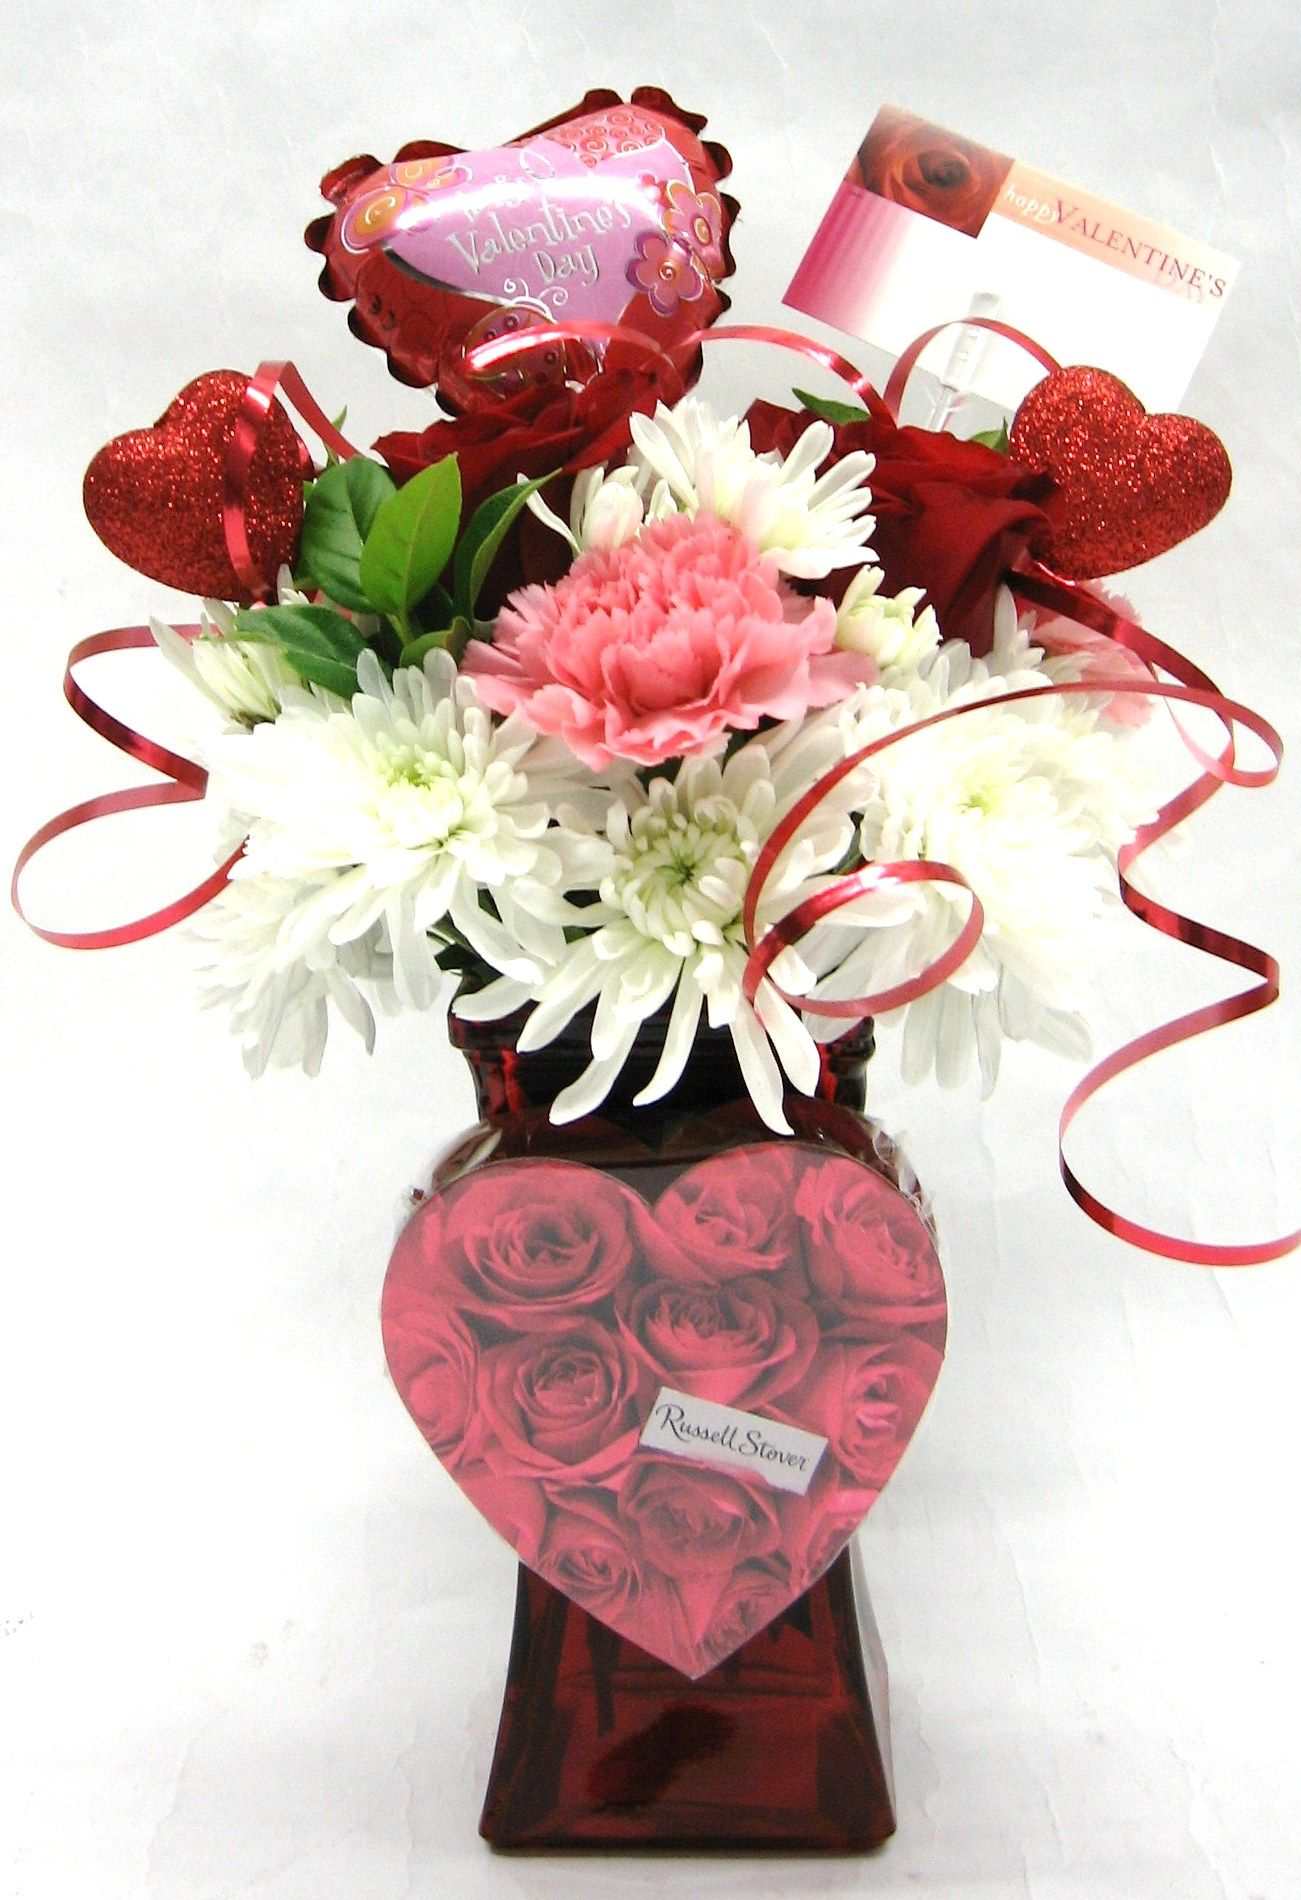 Chocolate & Flowers Valentine's Day Bouquet | Business ...